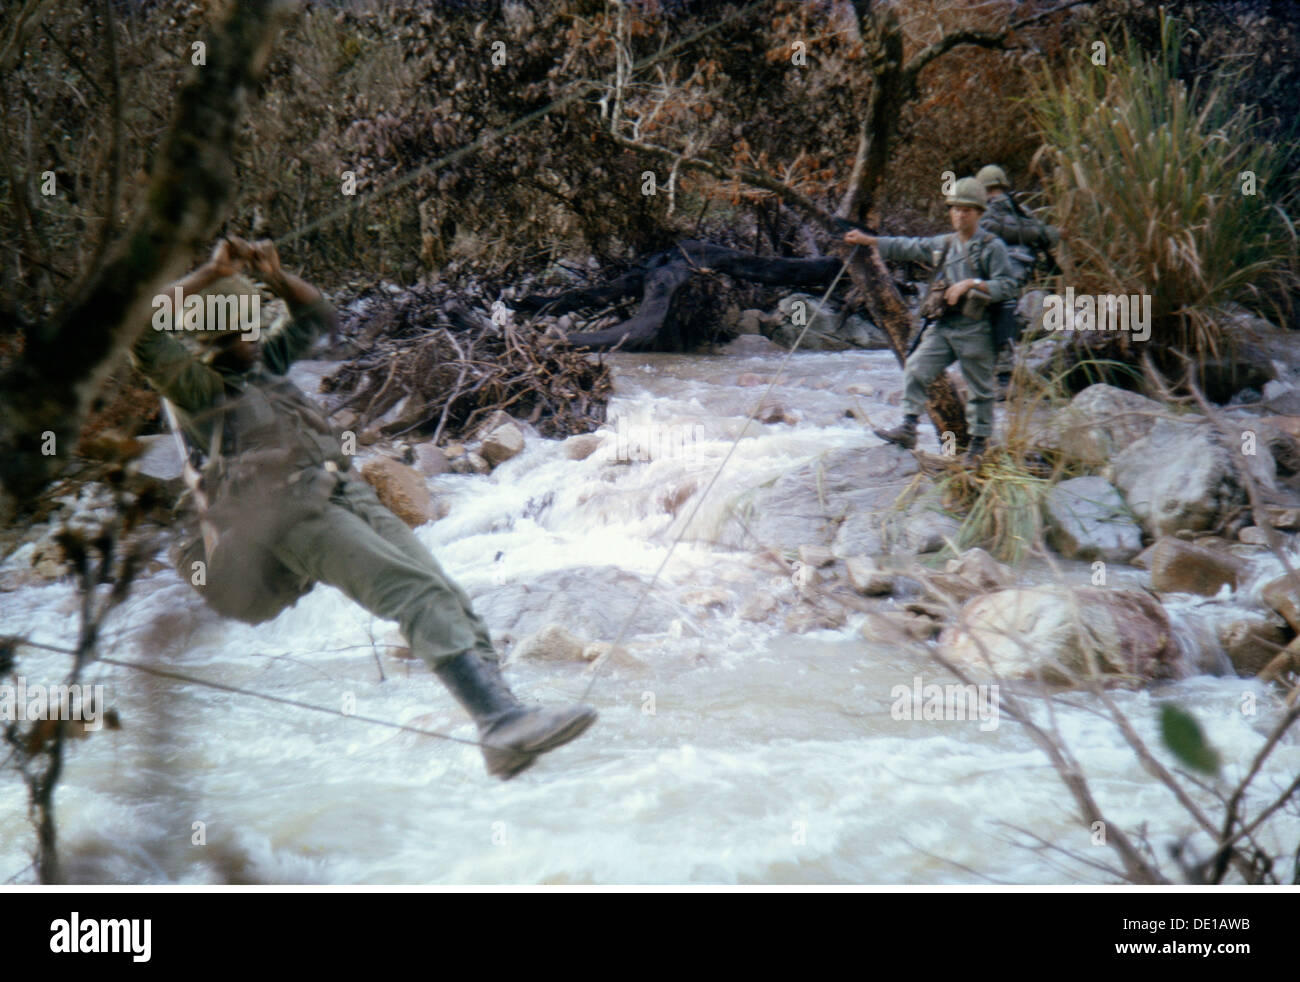 Vietnam War 1957 - 1975, American soldiers on patrol, crossing a river, South Vietnam, 1965, almost impassable region, - Stock Image